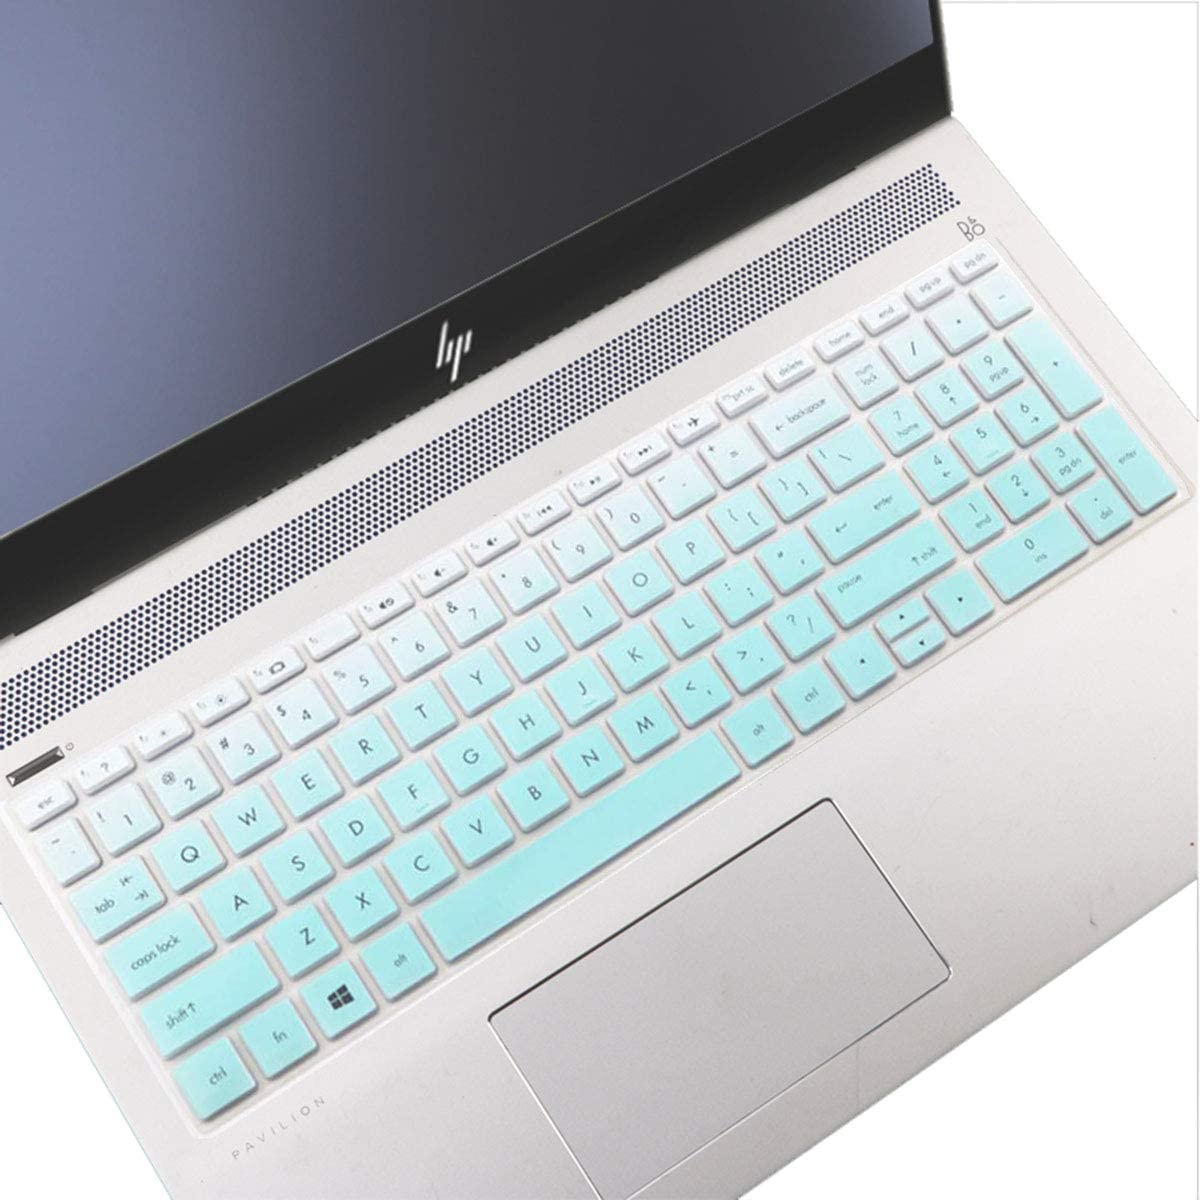 "Keyboard Cover Design for 2020 2019 15.6 HP Envy x360 2-in-1 Series, HP Pavilion 15.6 inch Series /2020 2019 17.3"" HP Envy 17 Laptop, HP Spectre X360 15 15.6"", Ultra Thin Protective Skin -Mint Green"